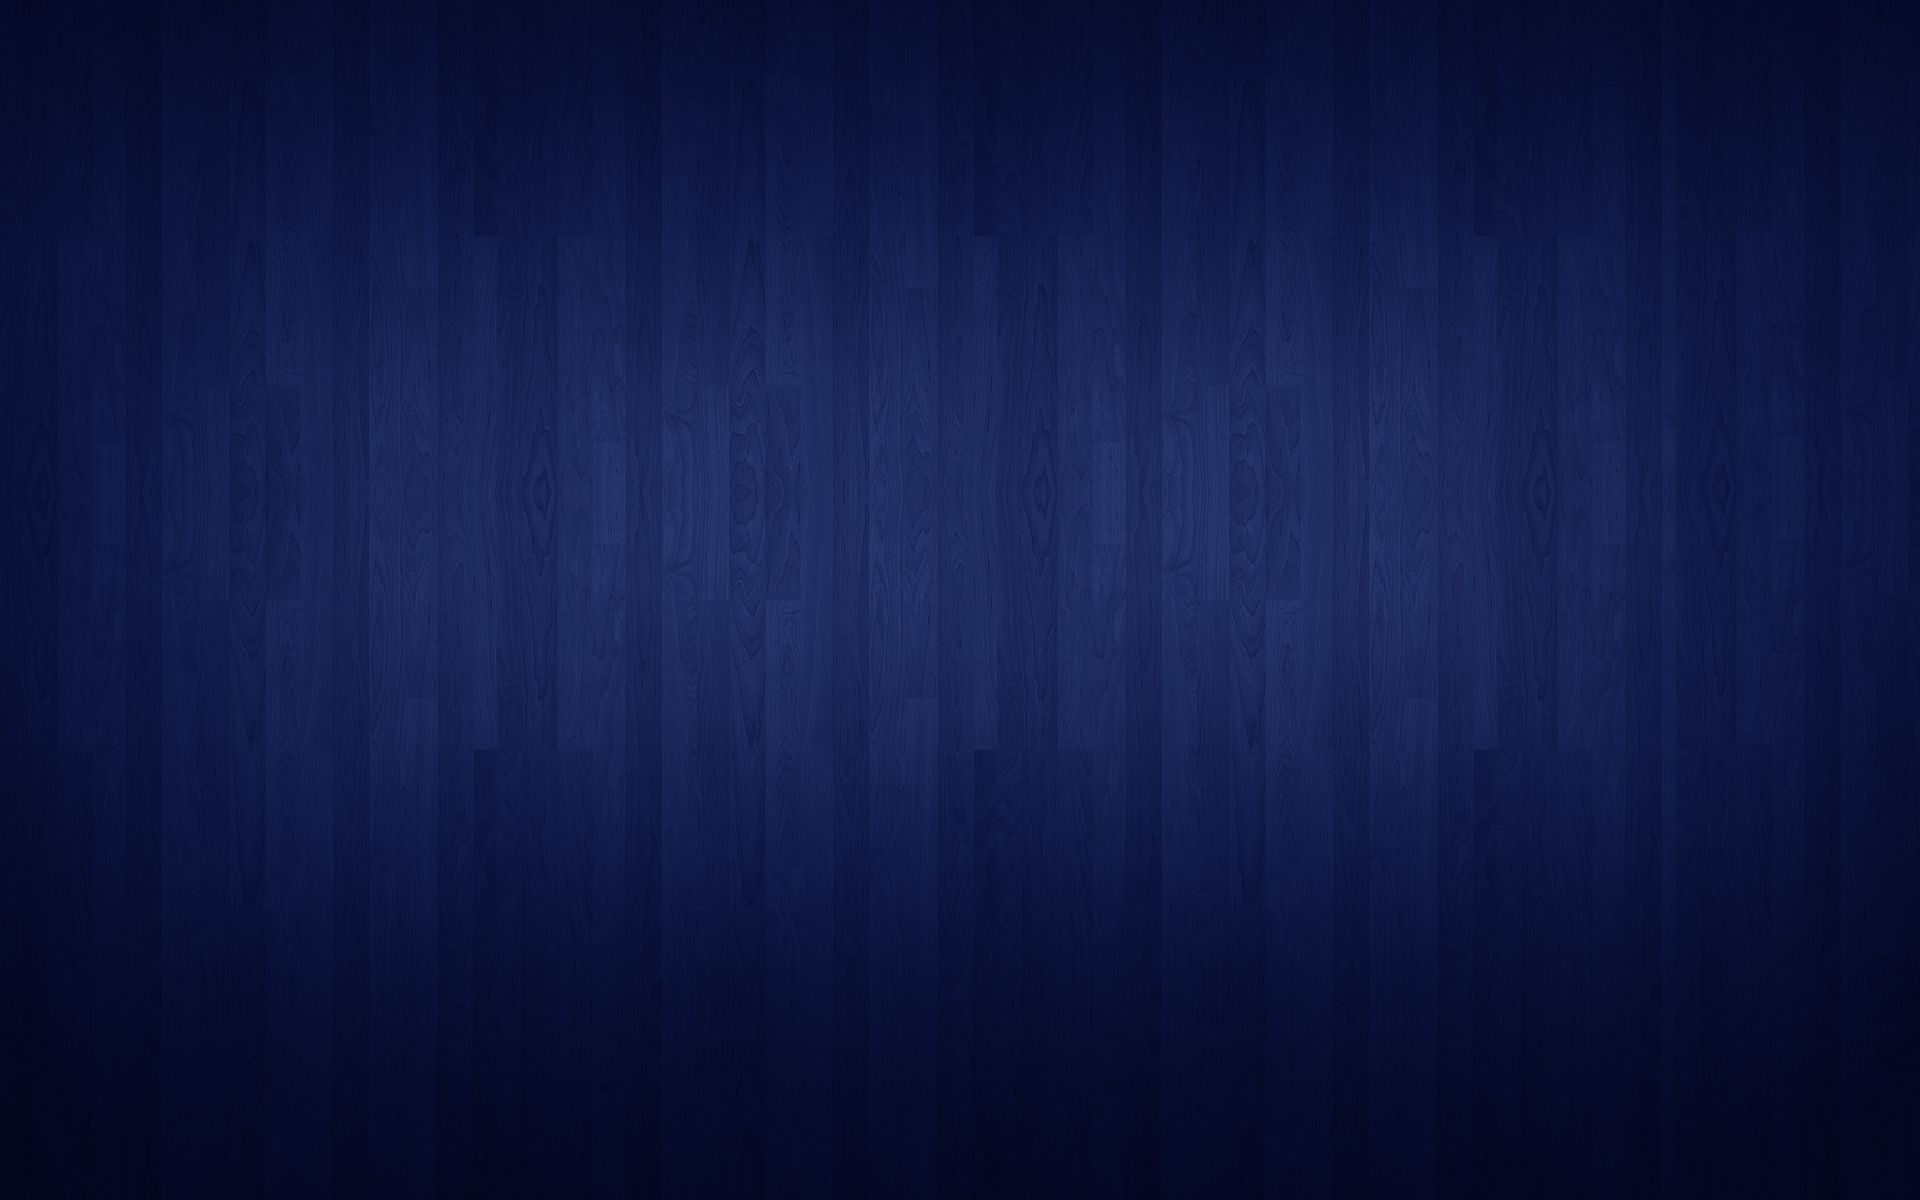 Pin by Jerome Ocampo on Web Design Background | Blue background wallpapers, Wallpaper, Blue ...